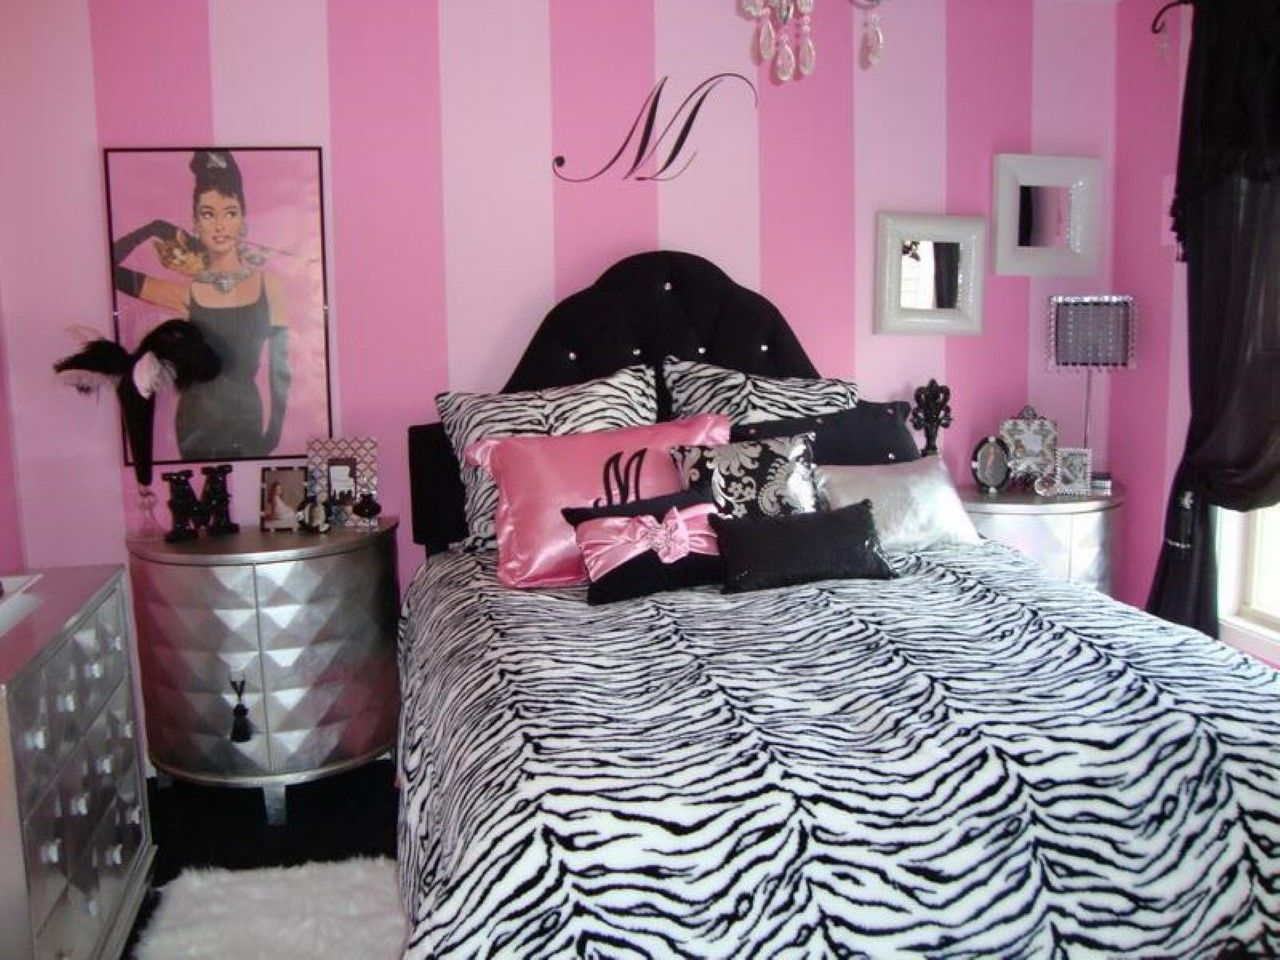 Captivating Funky Girl Theme Wall Decoration Feat Modern Zebra Print Bedroom Bedding  Set Idea Also Tufted Headboard